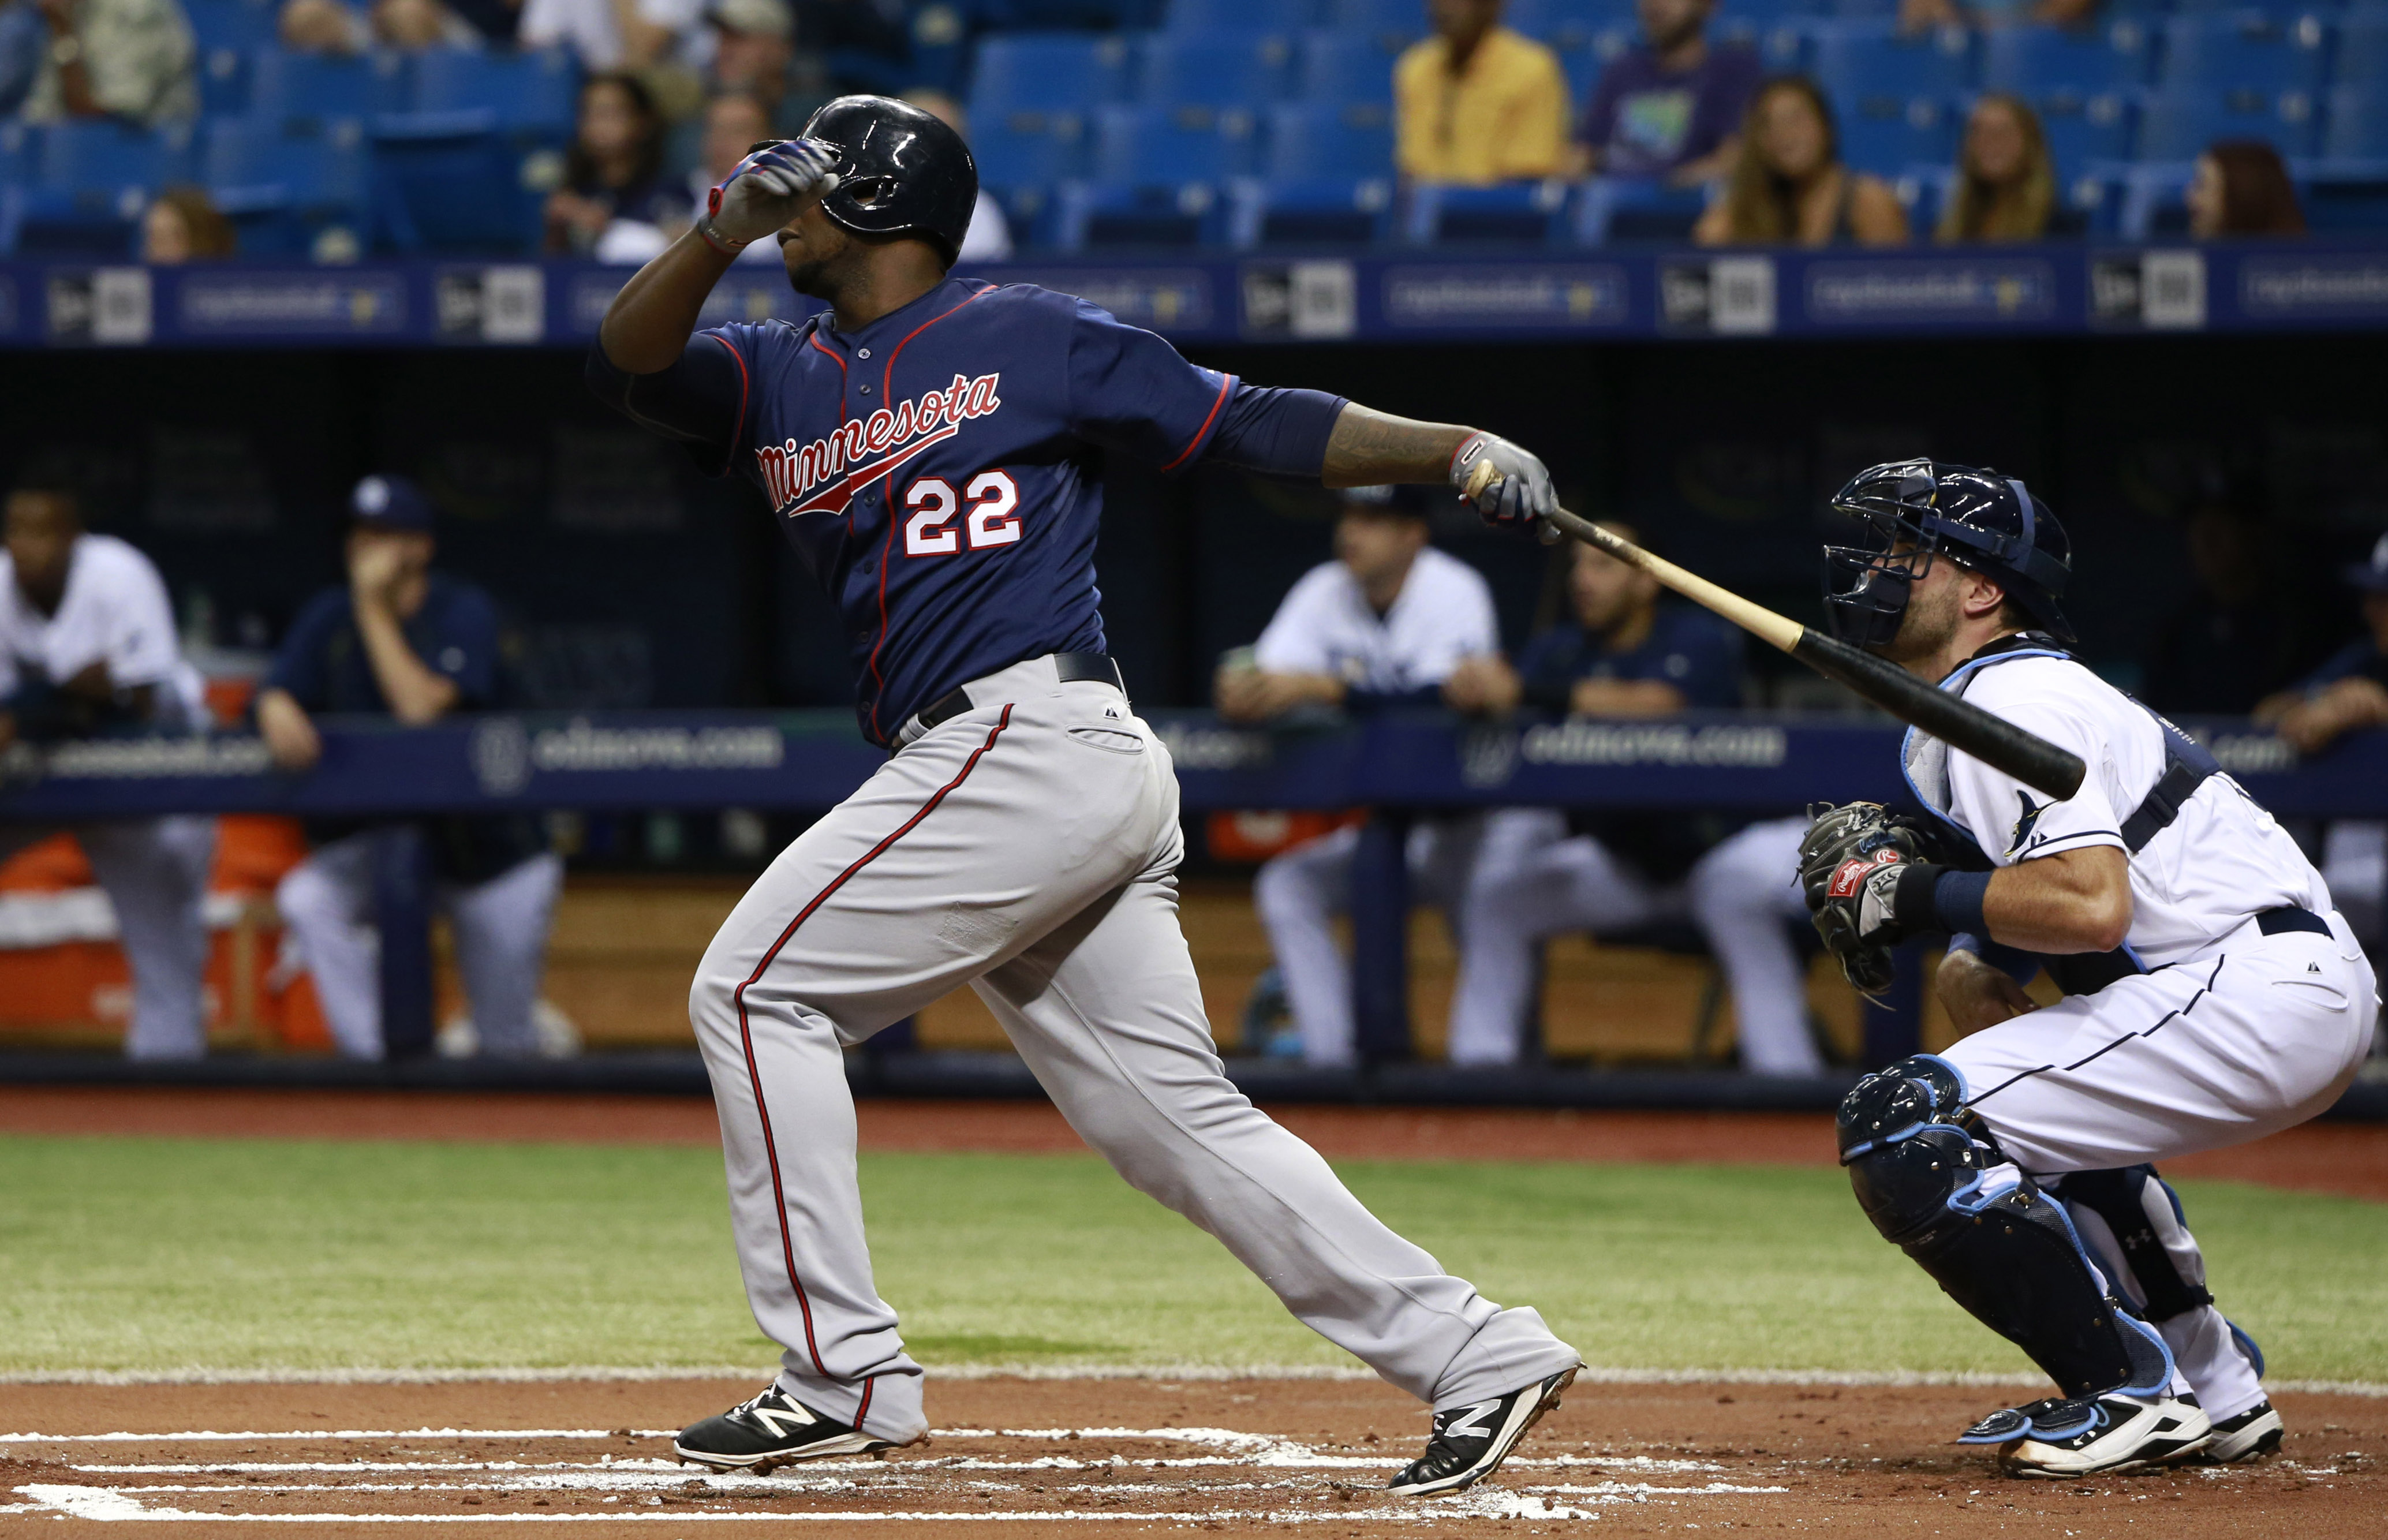 Miguel Sano has many in the Twin Cities excited about 2016. Unfortunately for fantasy owners, he won't have 3B eligibility to start the season.